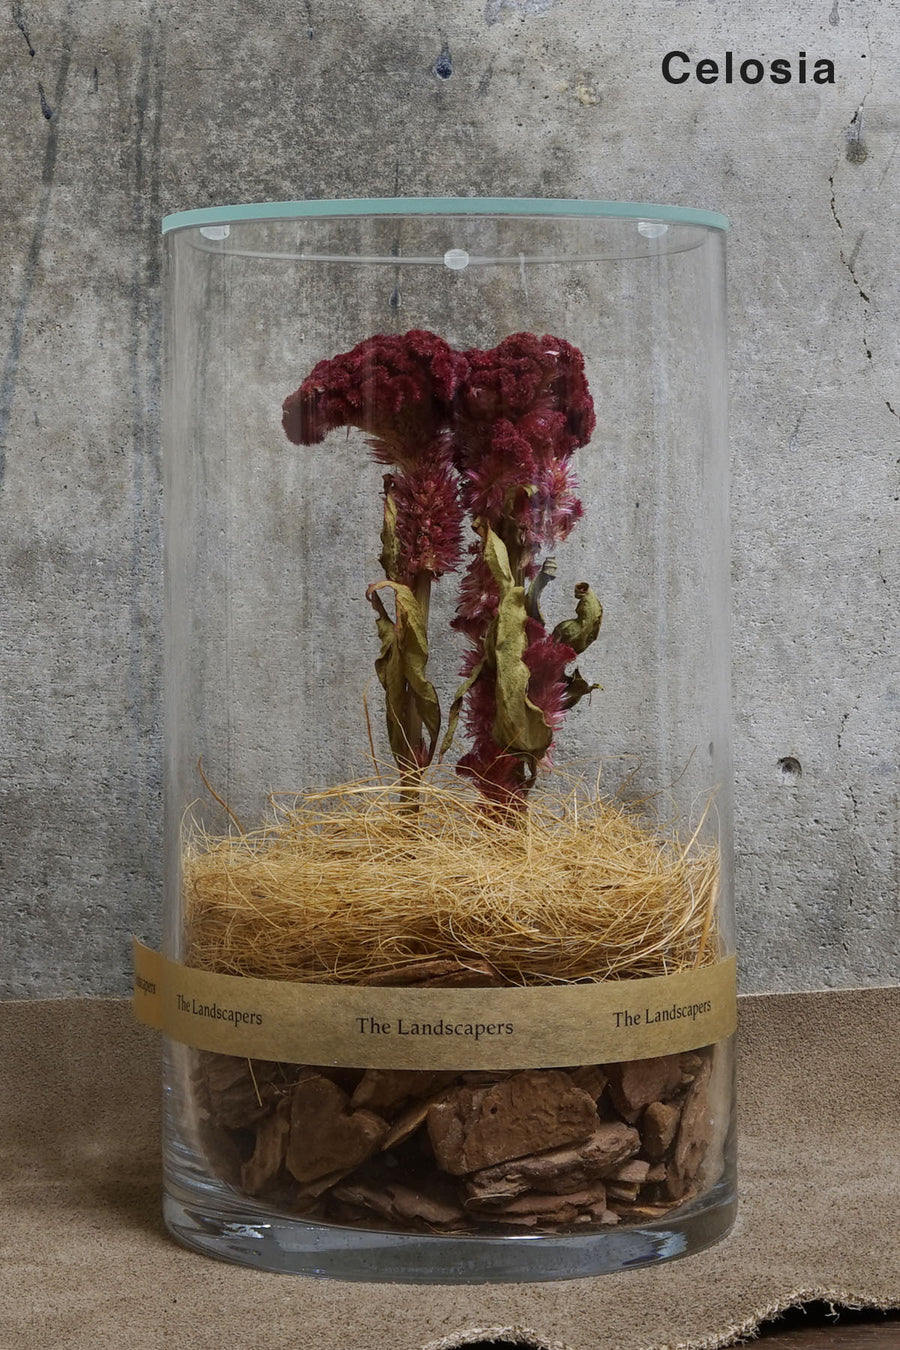 The Landscapers -DC 20 with LID Wood- CELOSIA